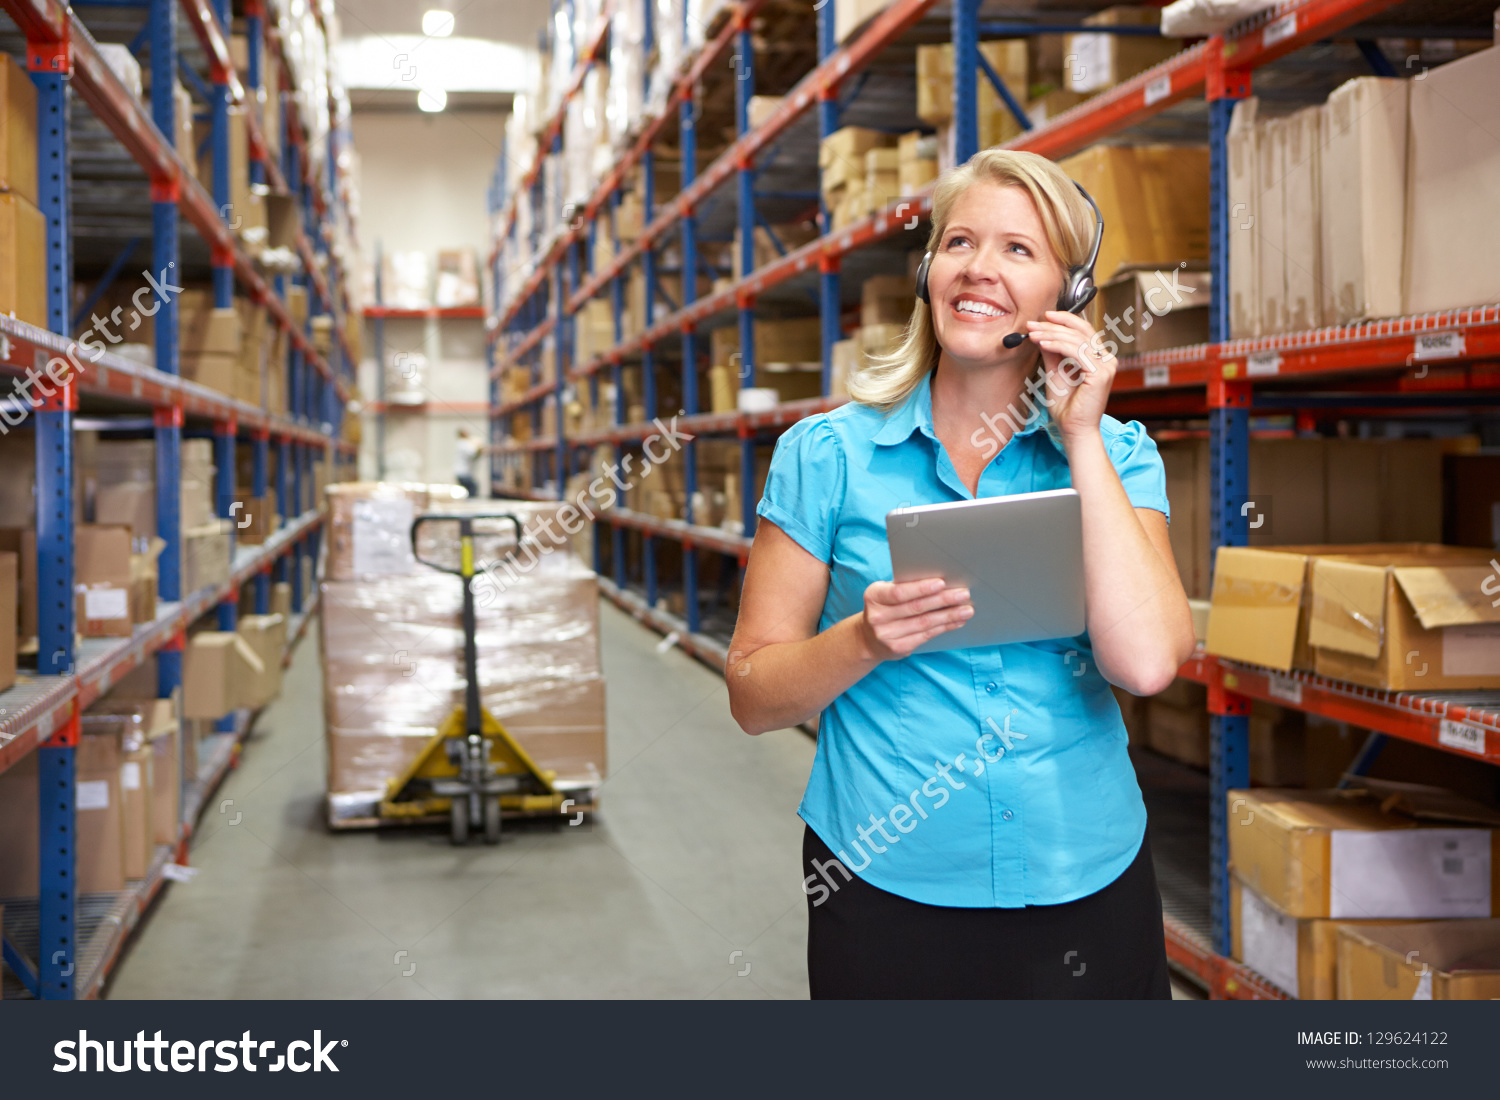 stock-photo-businesswoman-using-digital-tablet-in